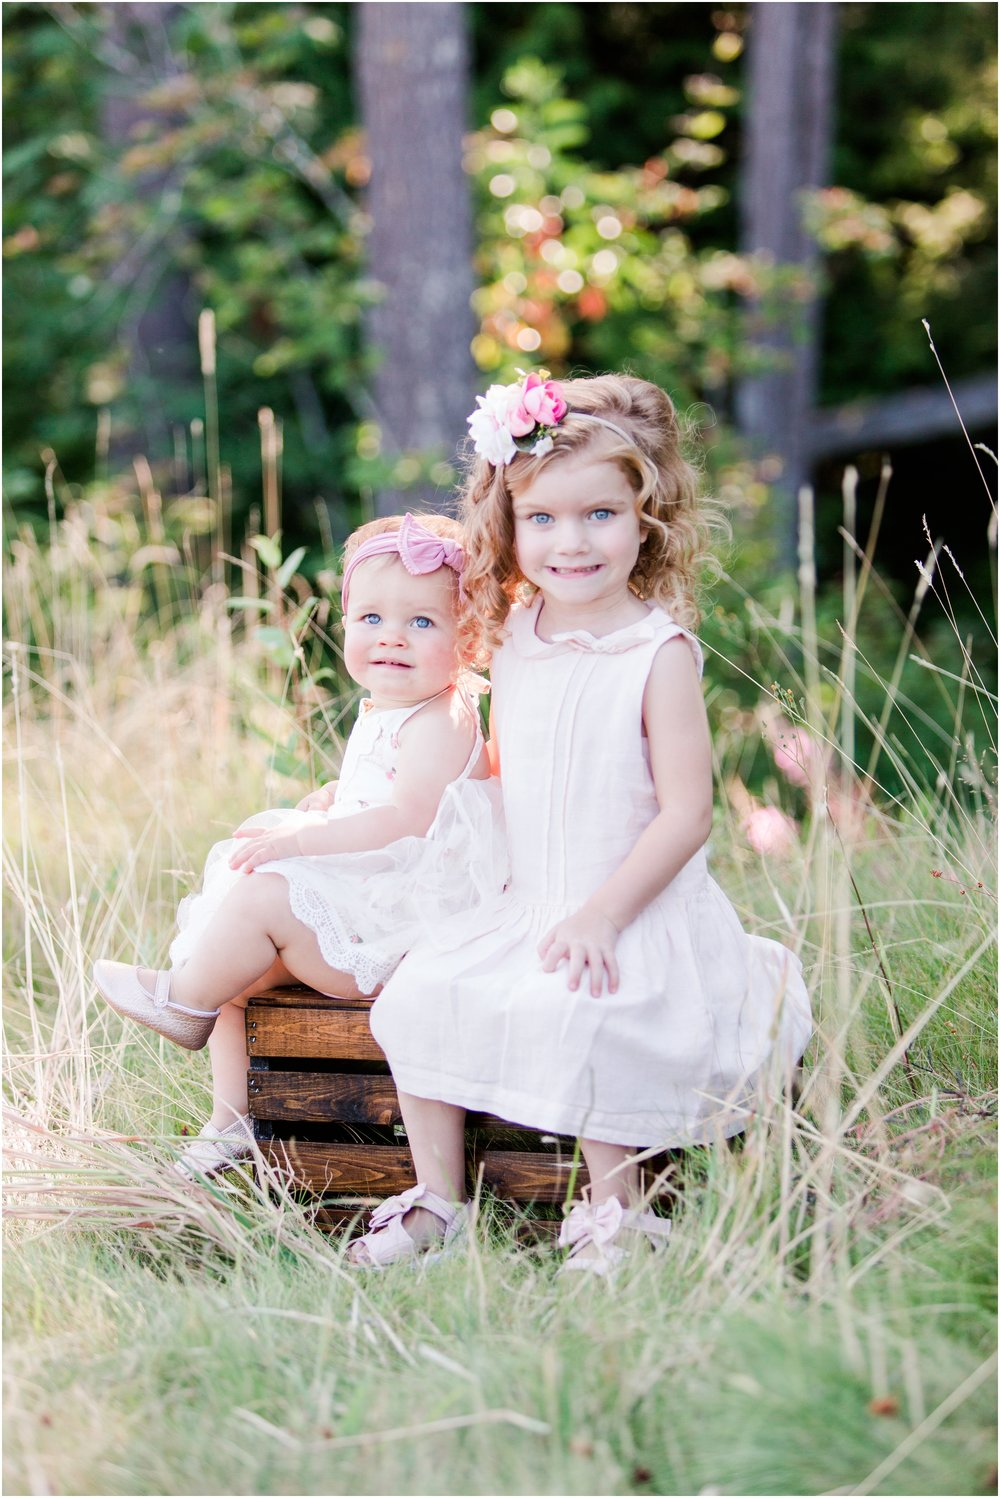 One year old photos by Briana Calderon Photography based in the Greater Seattle & Tacoma, WA_0683.jpg